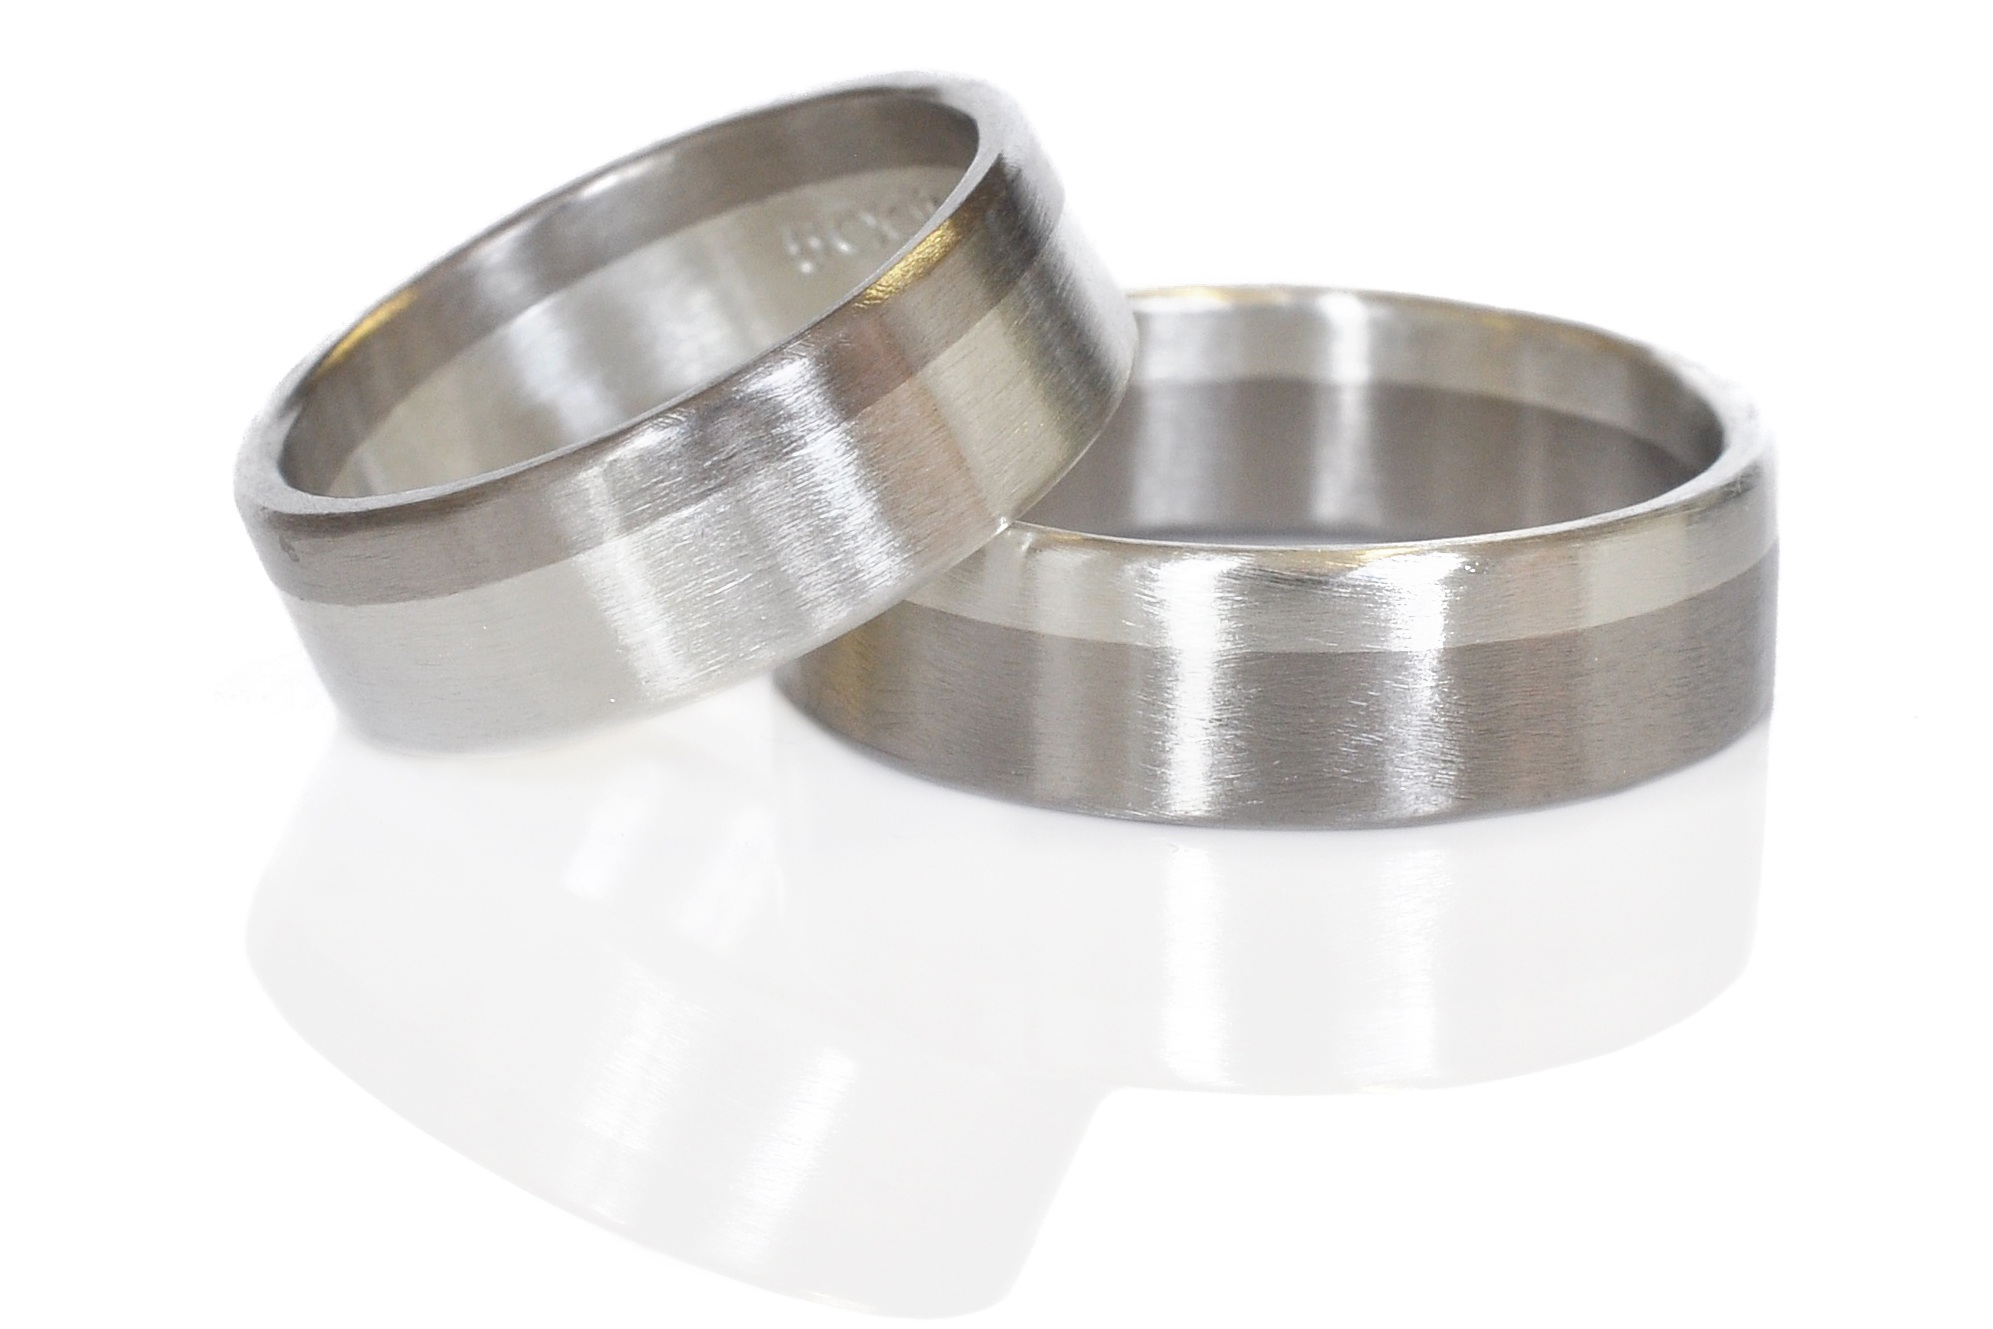 Sleek satin finish wedding bands for Her, Him, Them in 500 palladium and sterling silver